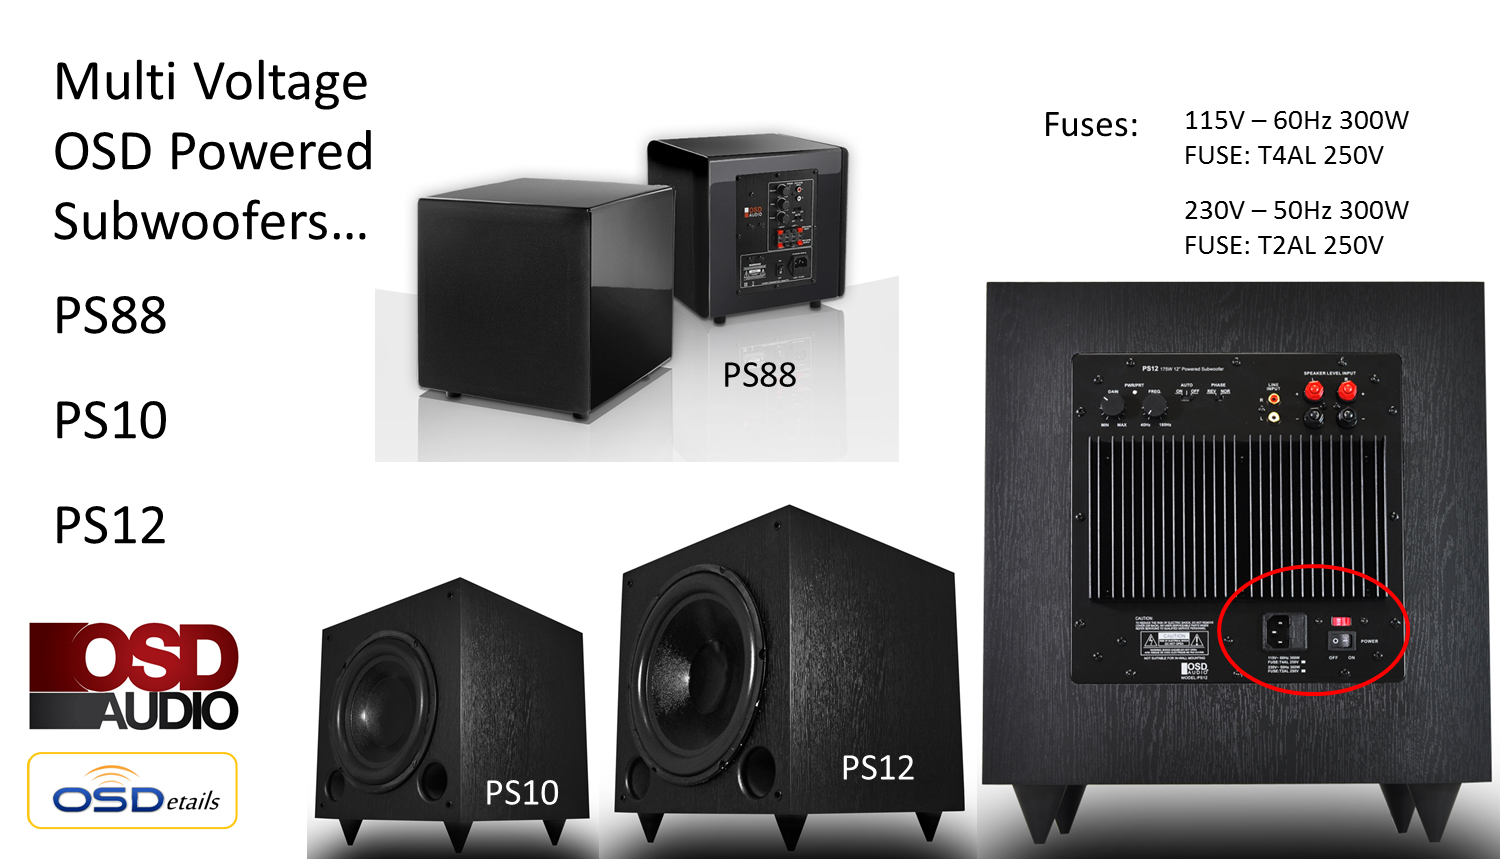 ps88 home theater subwoofer - dual woofer compact design